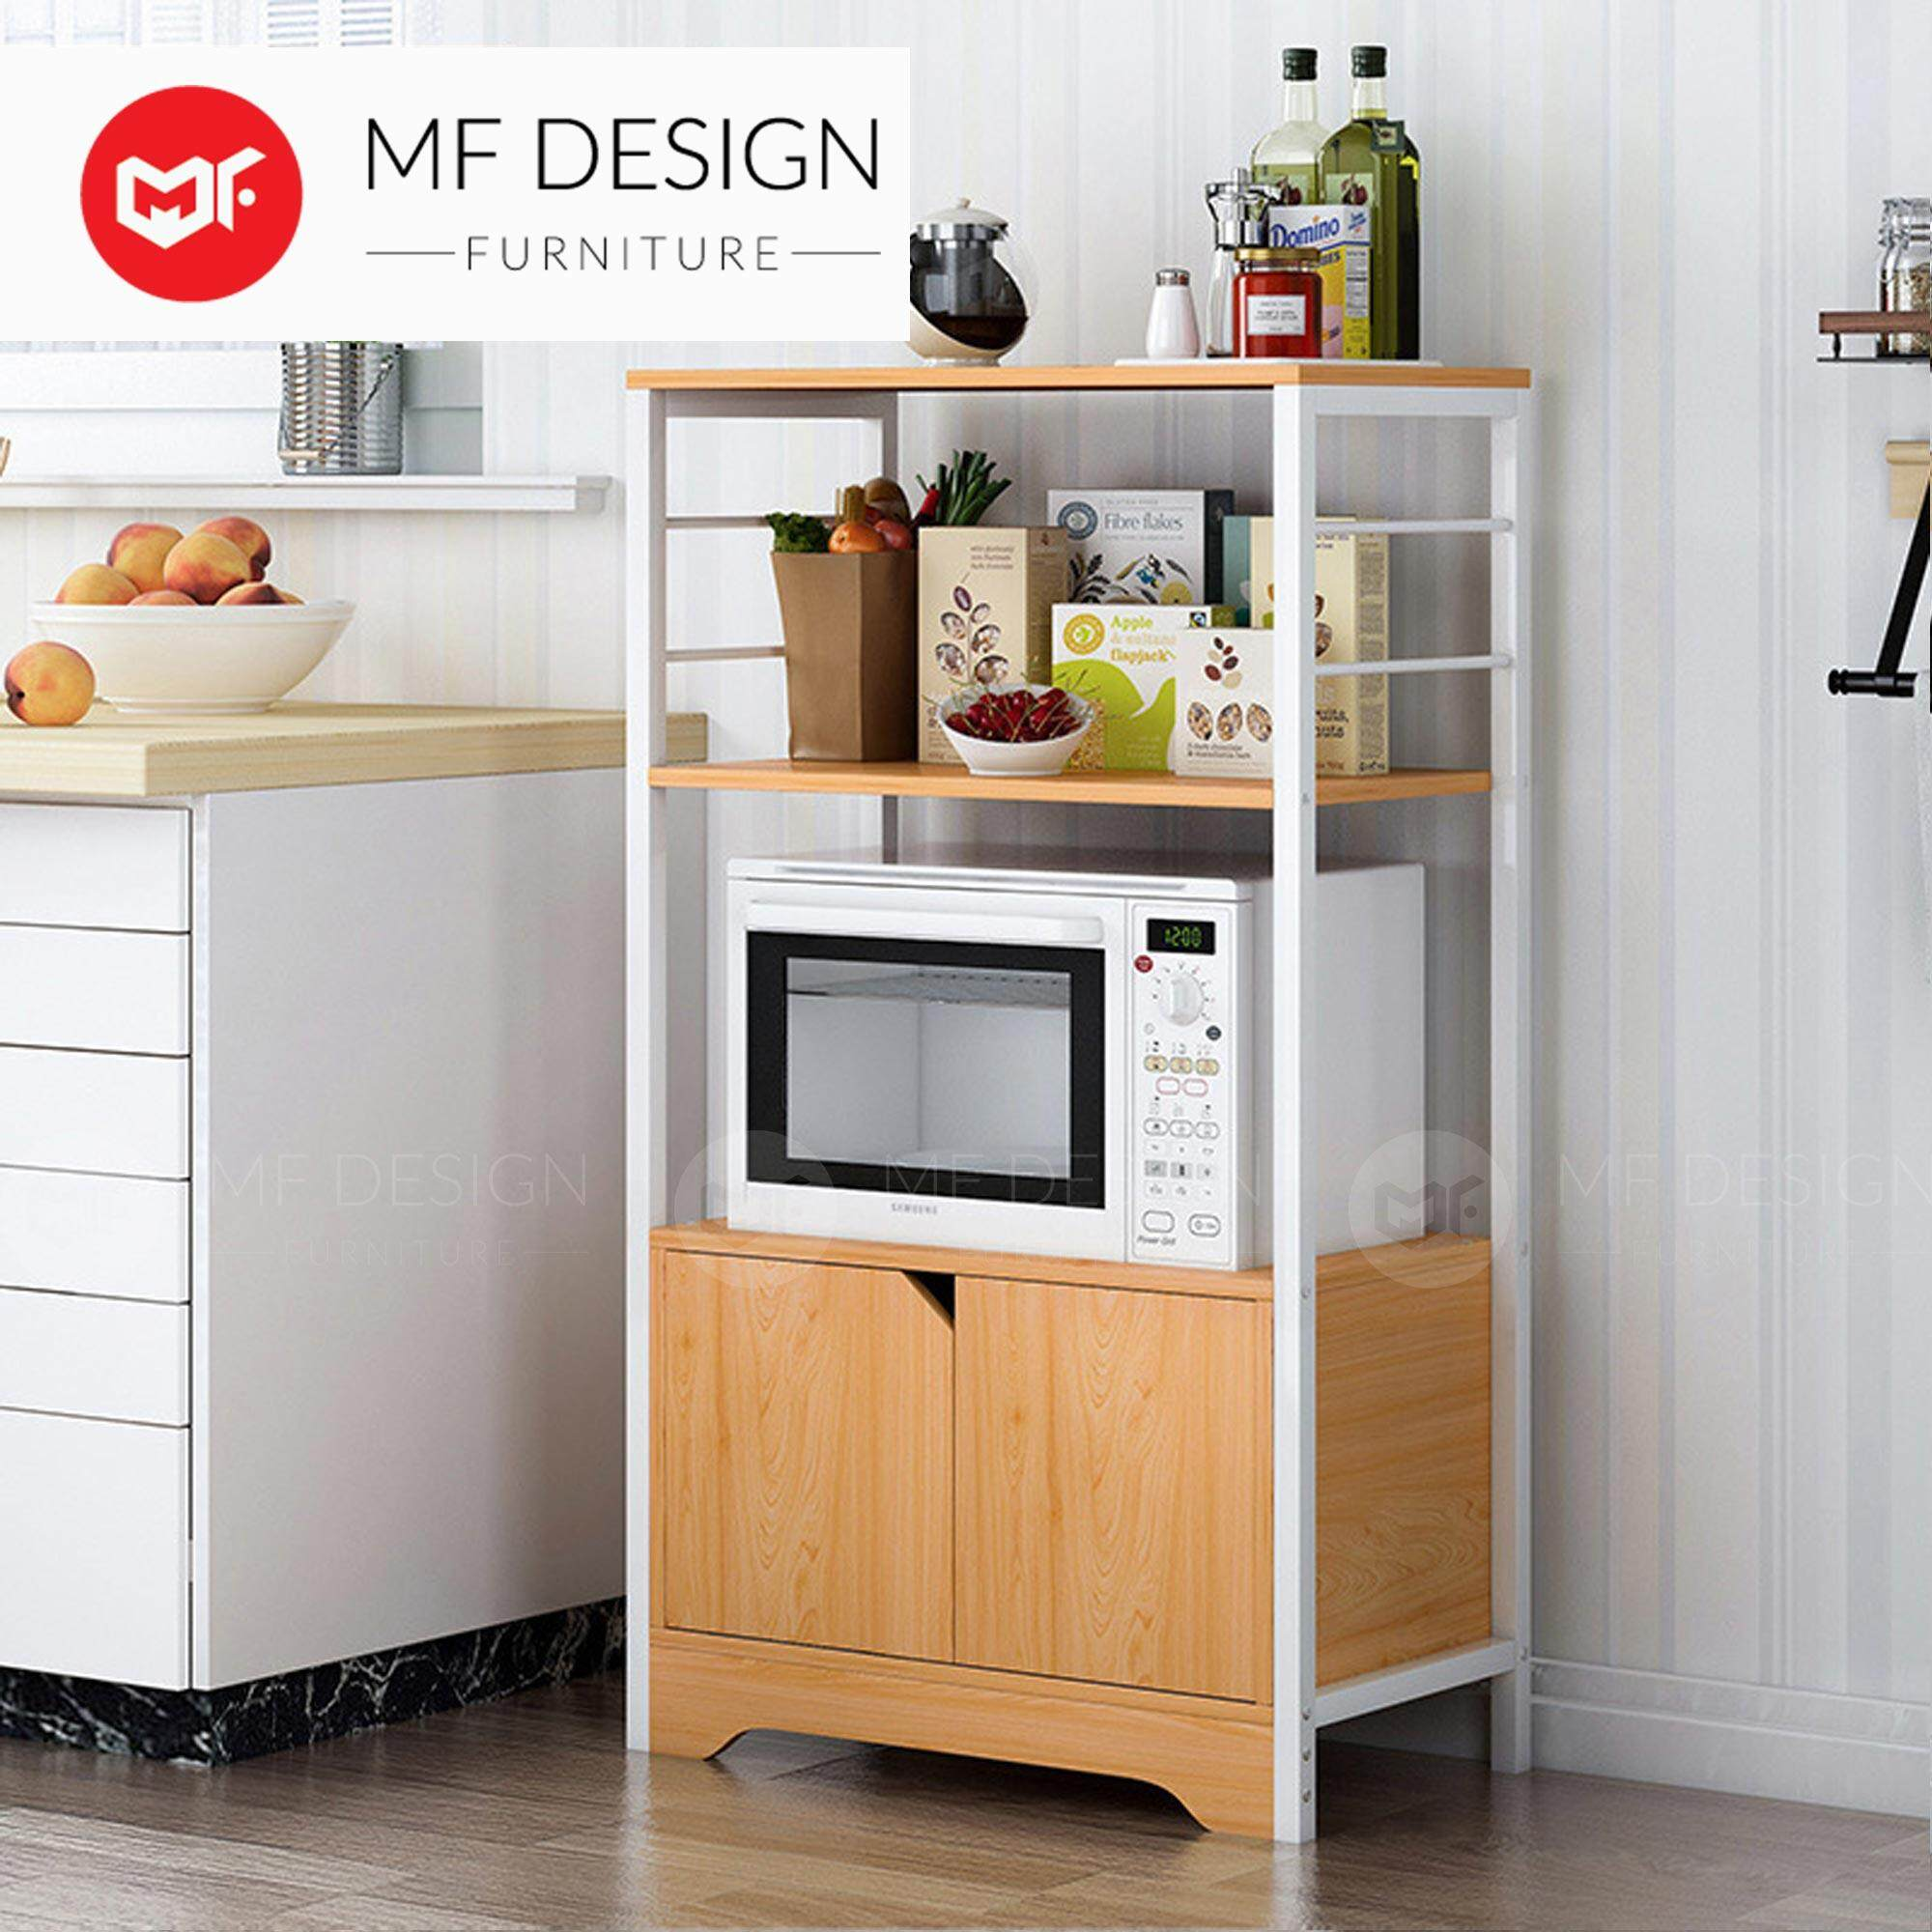 MF DESIGN Kitchen Storage Racks Household Microwave Oven Rack European-style Multi-Function Living Room Storage Cupboard (L85) 2019